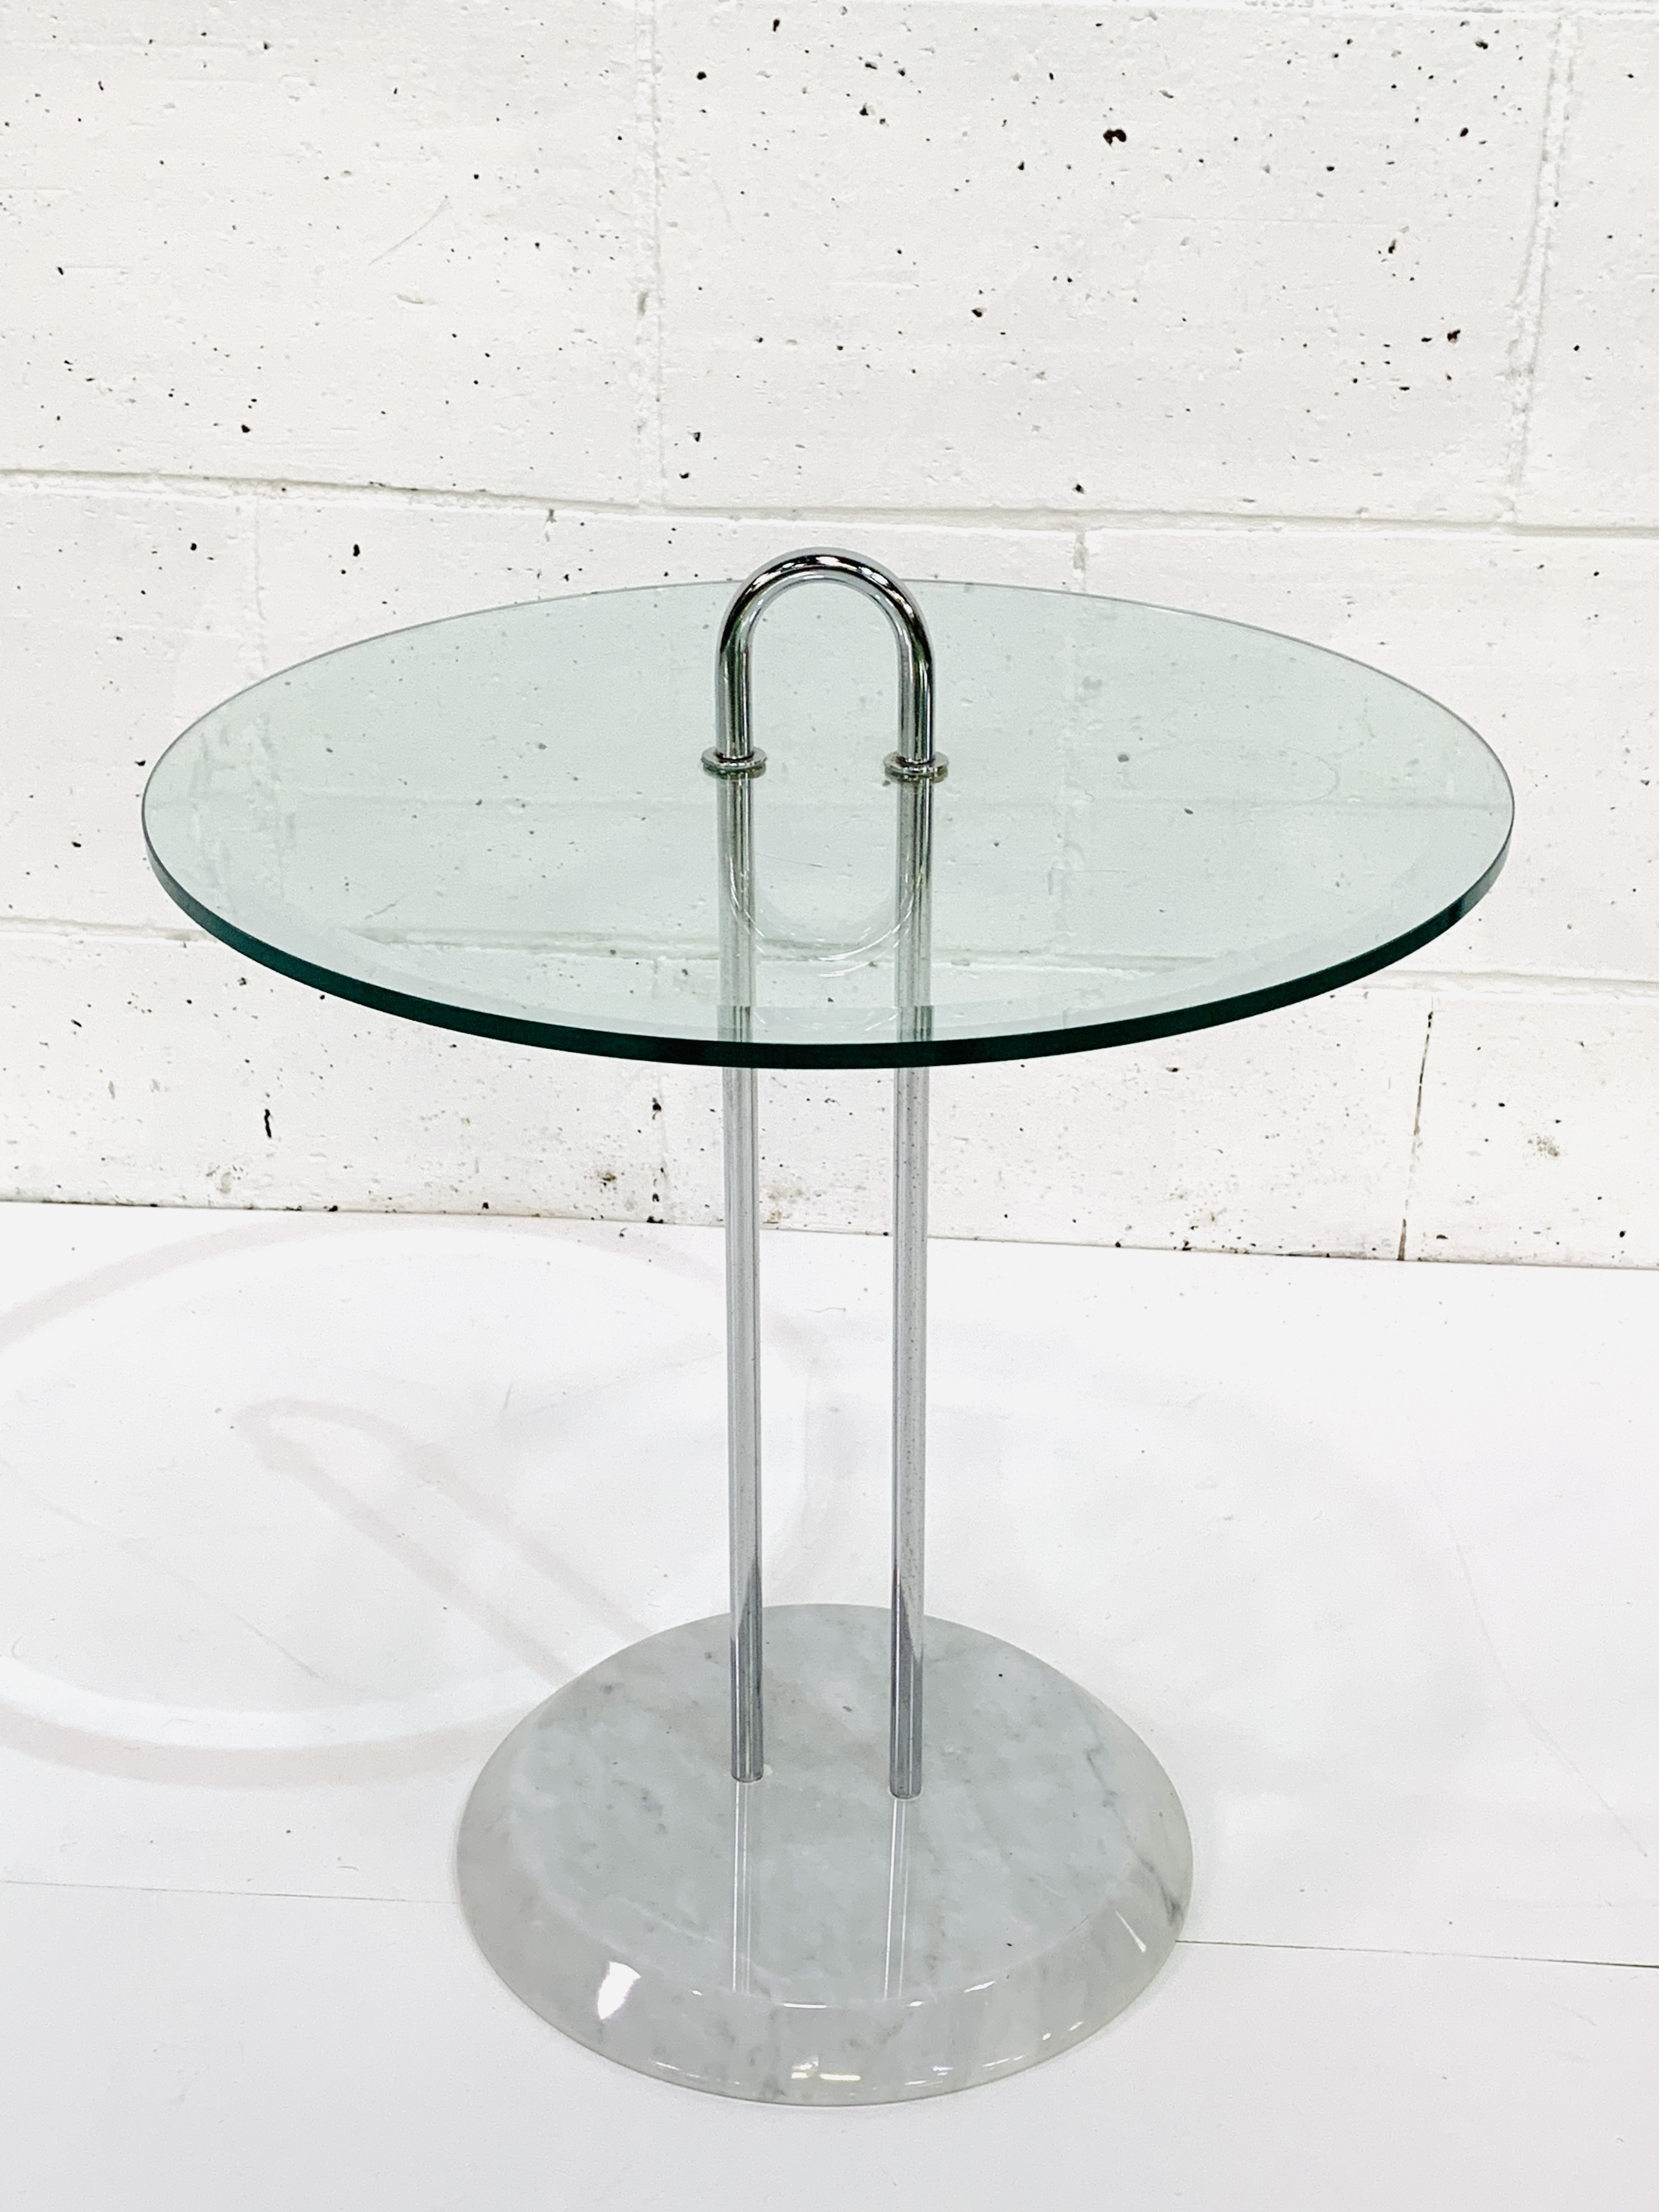 Circular bevelled edge glass top side table